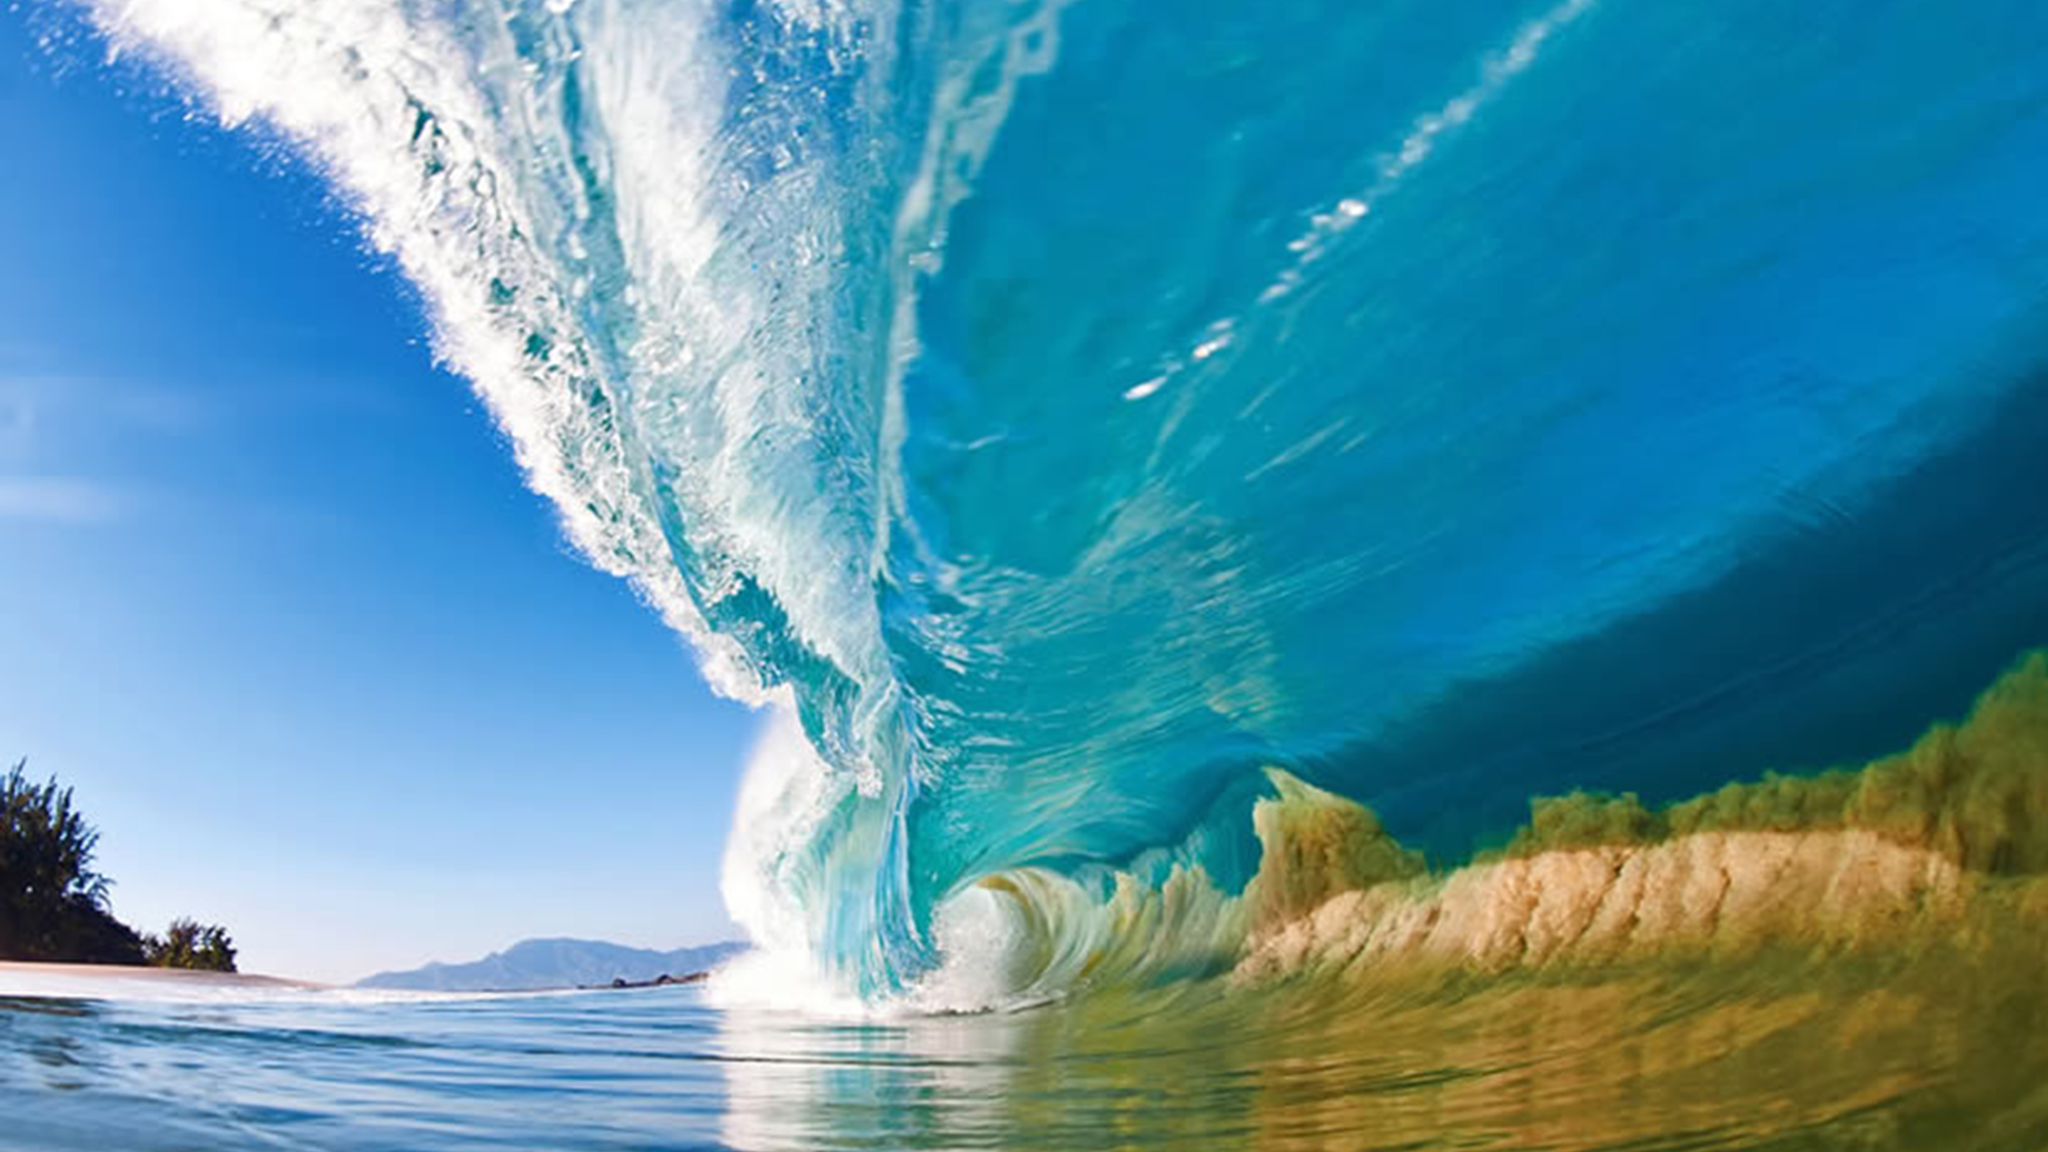 Ocean Wave Photography Clark Little Clark littles shorebreak 2048x1152